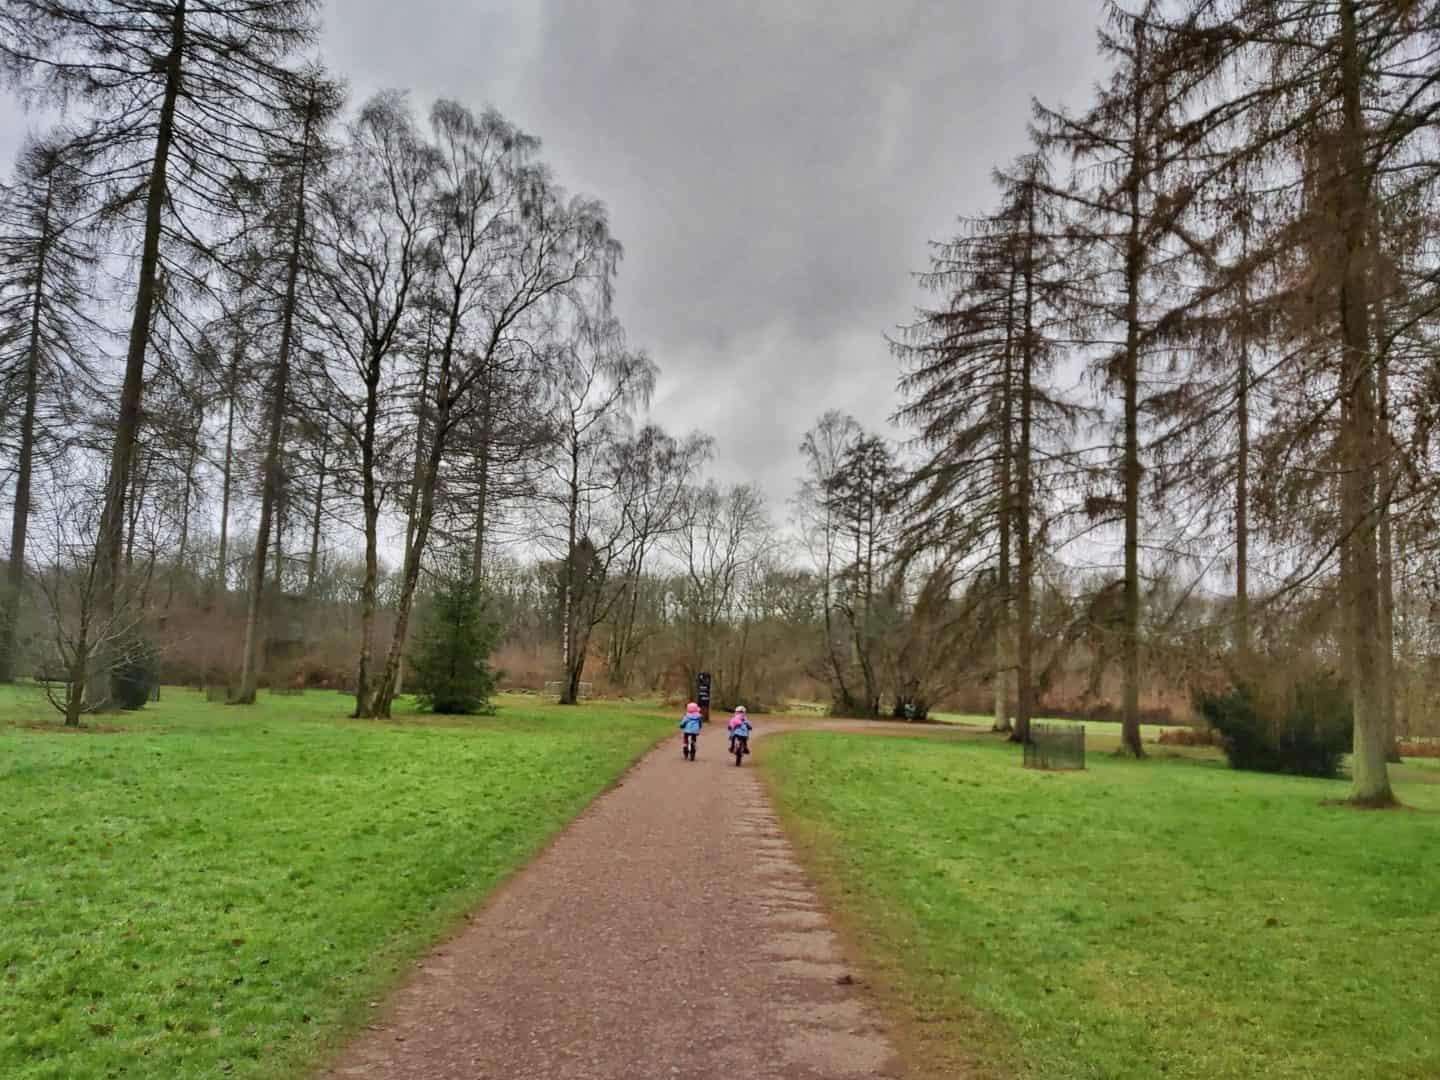 Two girls cycling on a flat path through a clearing in the trees at Westonbirt Arboretum